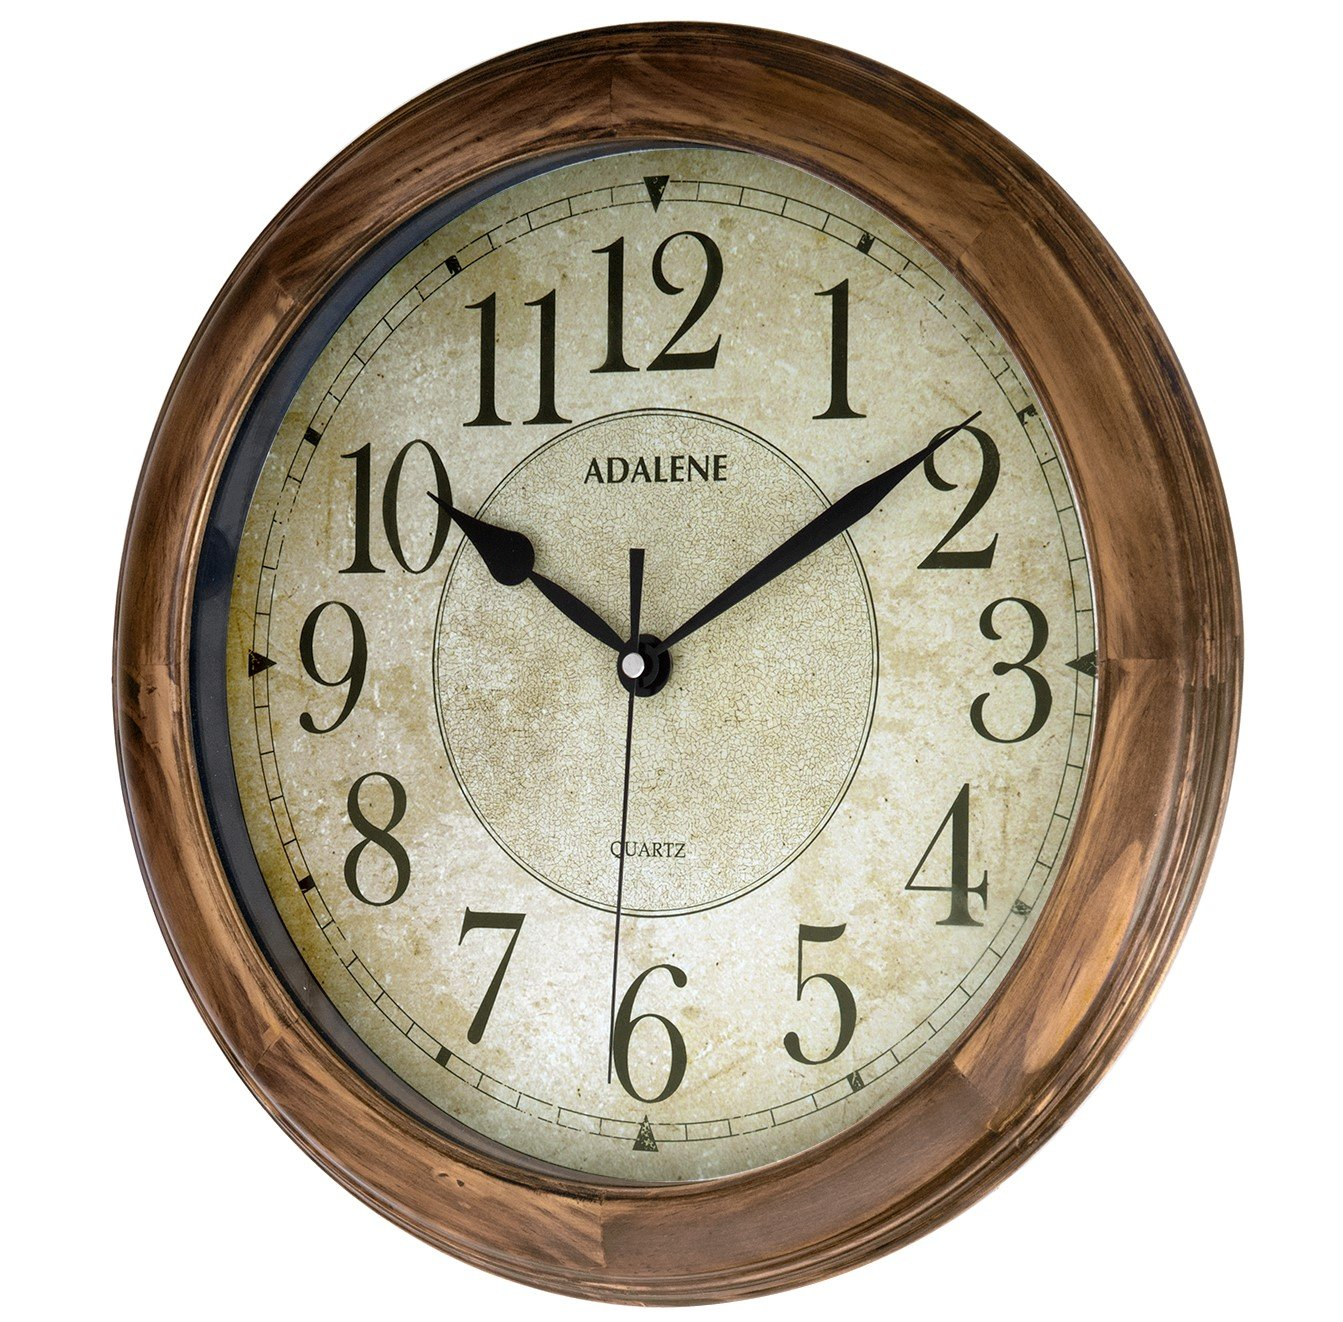 Amazon.com: Adalene 14 Inch Large Wall Clock Decorative Living Room Modern    Battery Operated Quartz Analog Movement Silent Wall Clock For Home    Round ...